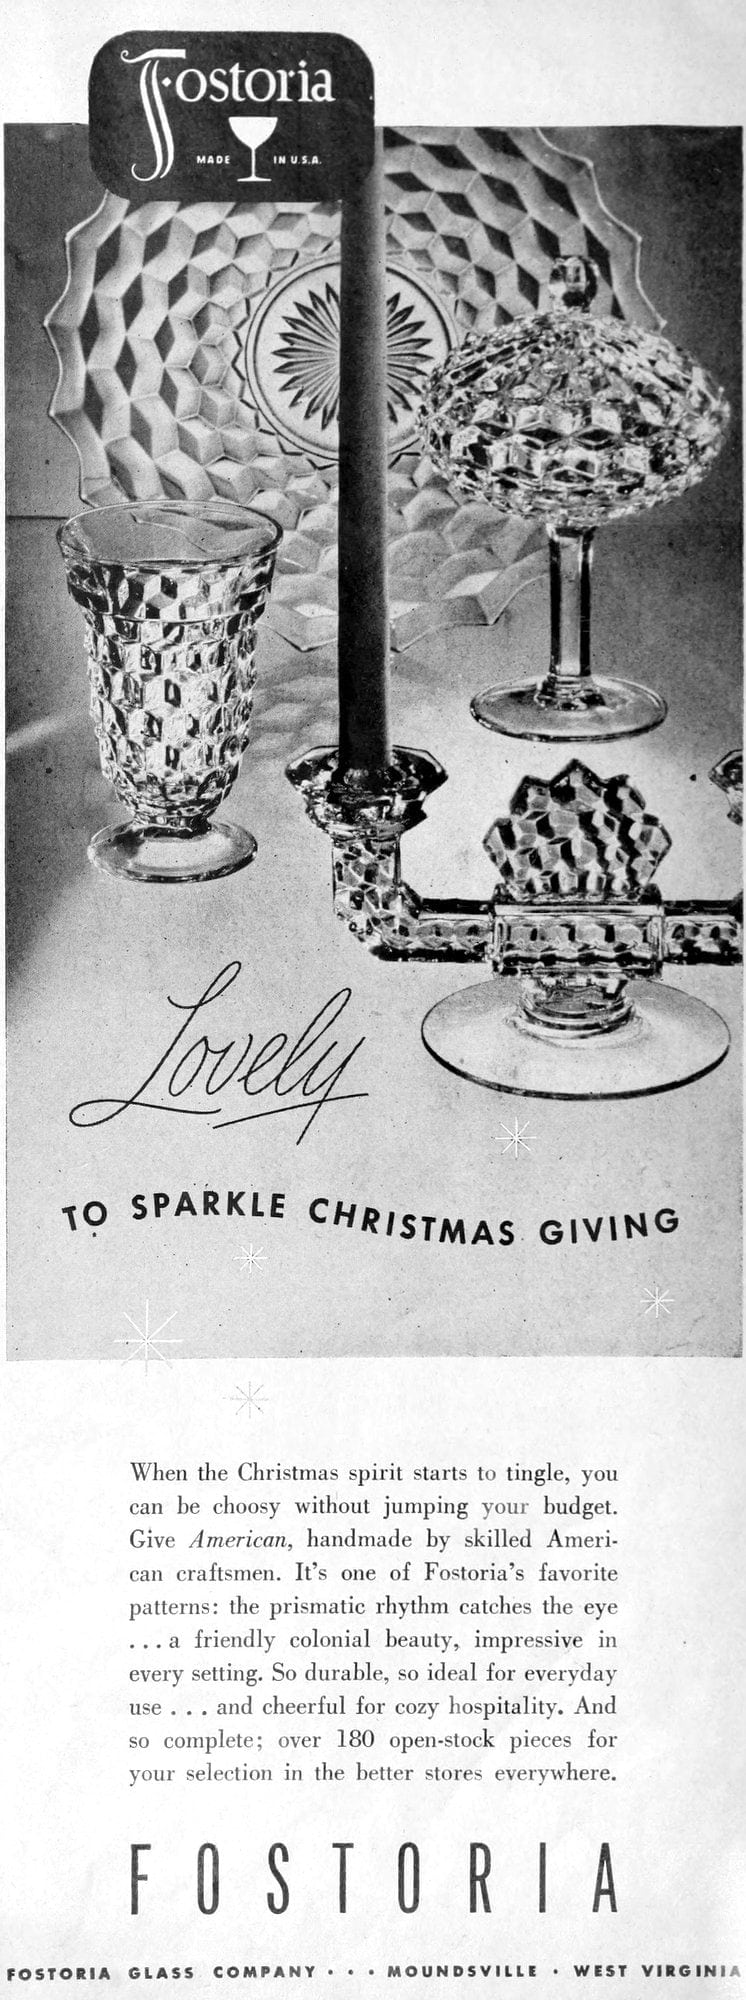 Old-fashioned Fostoria sparkle glasses from 1948